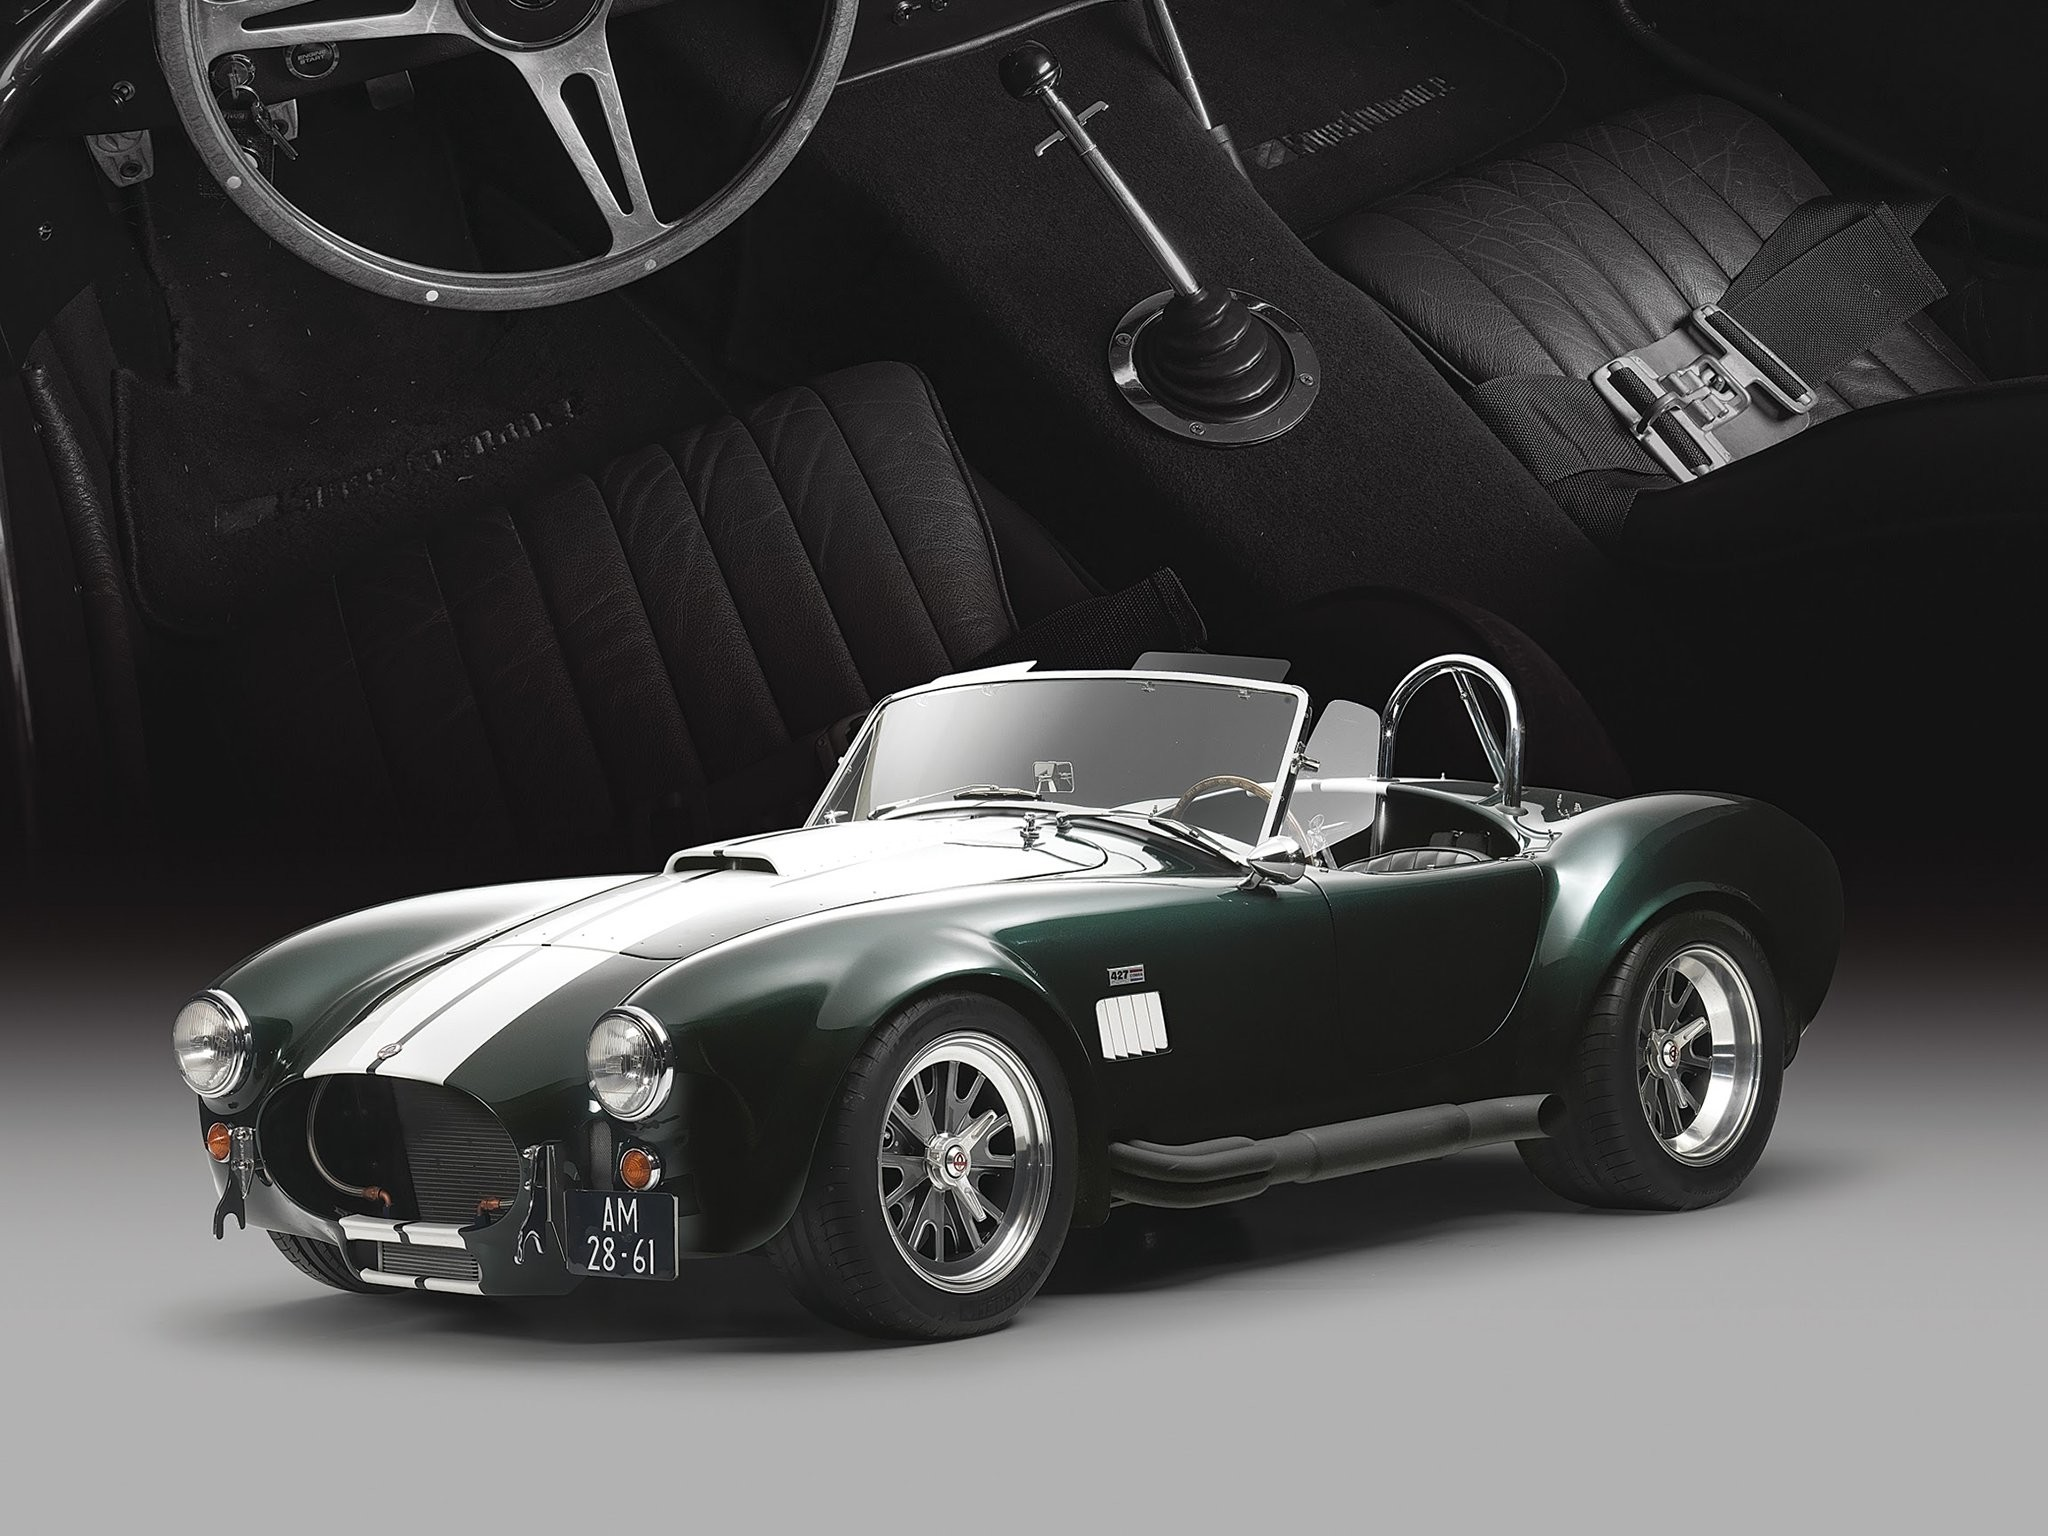 1965 Shelby Cobra 427 MkIII supercar hot rod rods muscle classic g wallpaper  | | 298150 | WallpaperUP